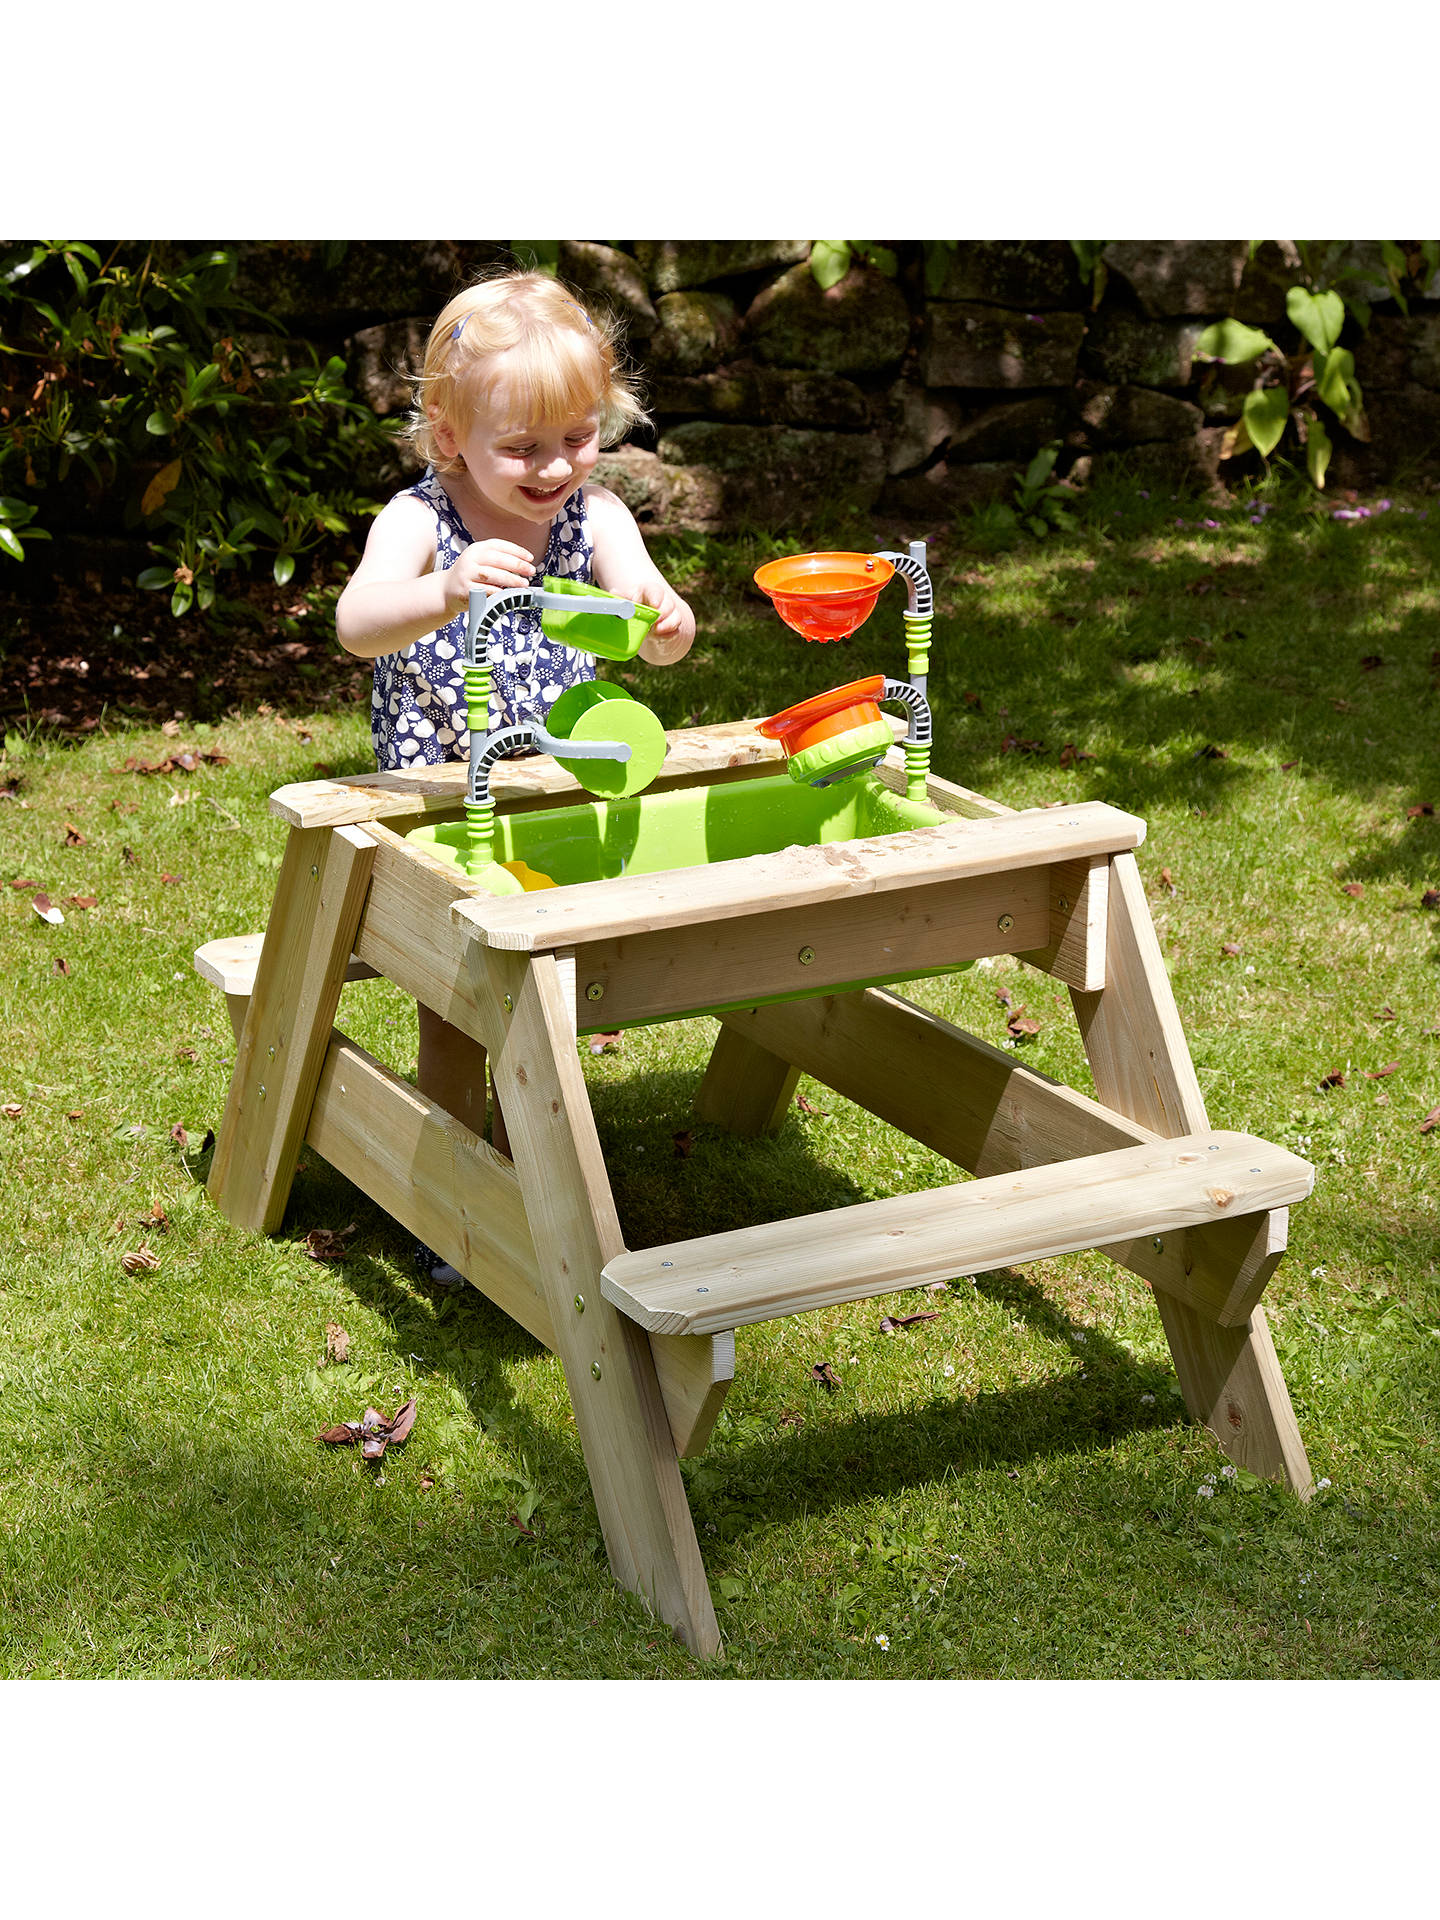 Peachy Tp Toys Tp285 Early Fun Picnic Table Sandpit Pabps2019 Chair Design Images Pabps2019Com